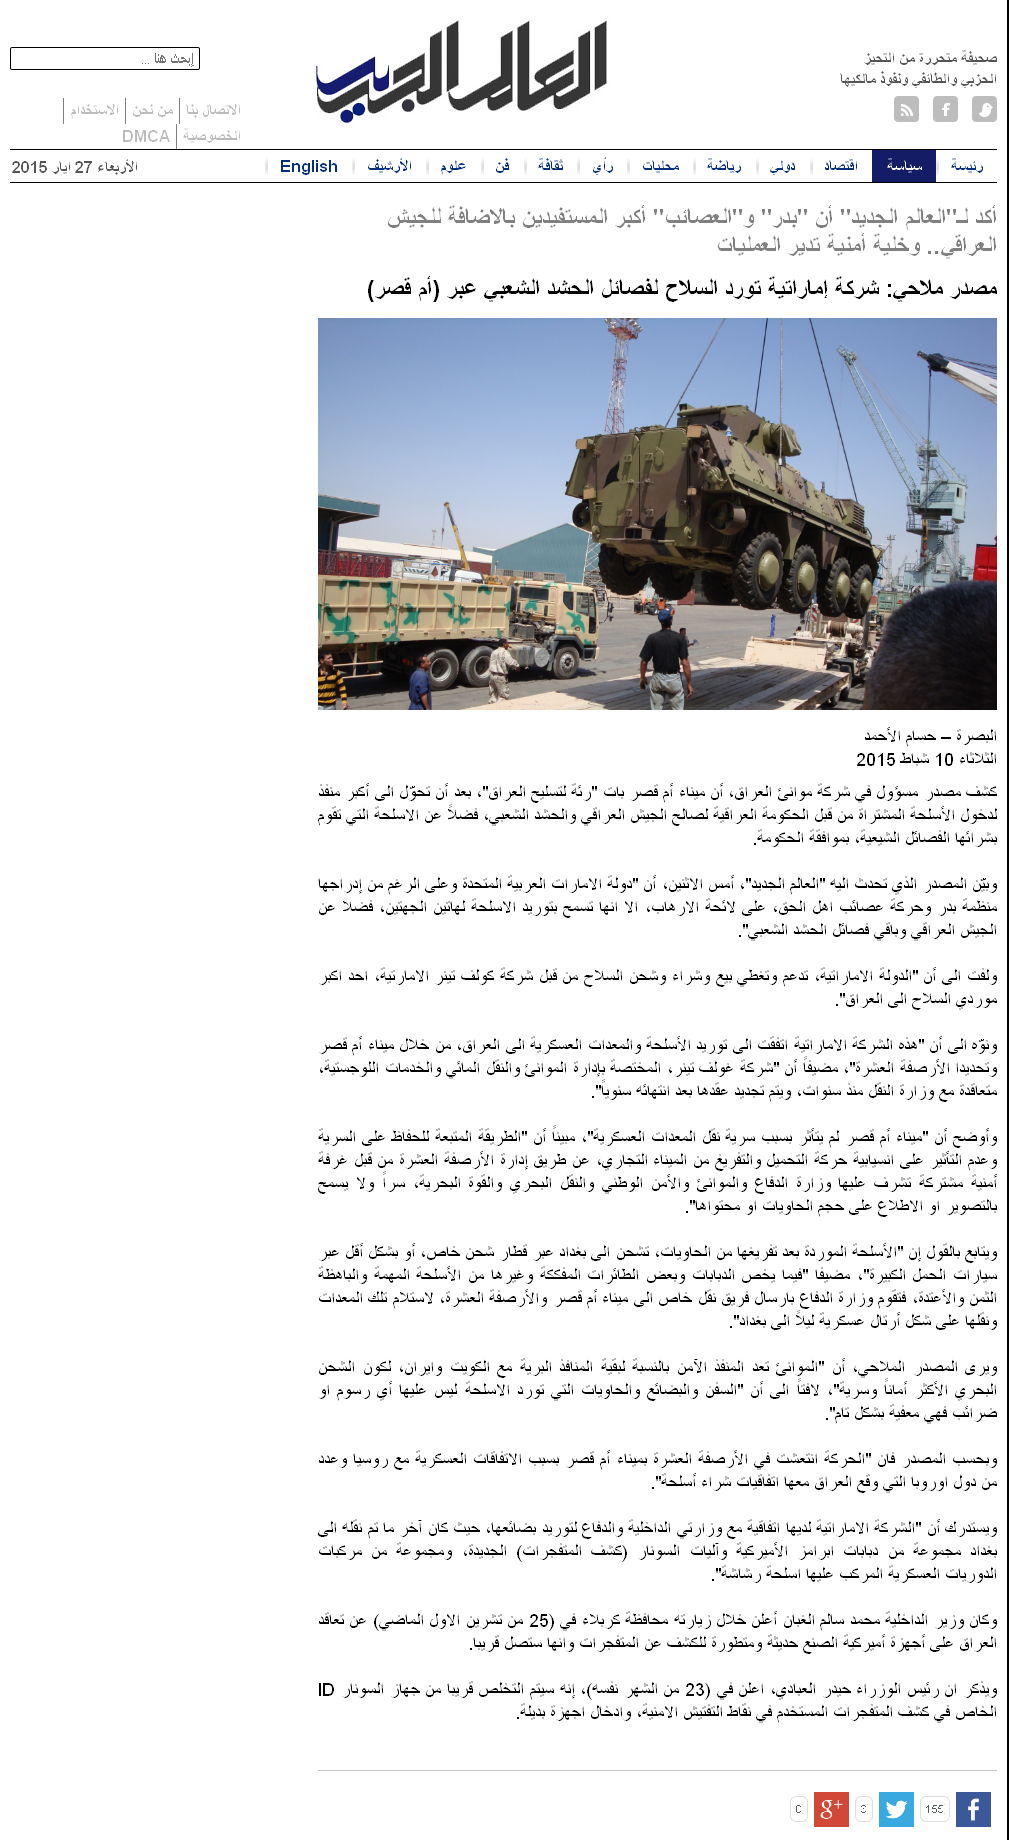 Screenshot of story about Iraq's Port of Basra published by al-aalem.com.